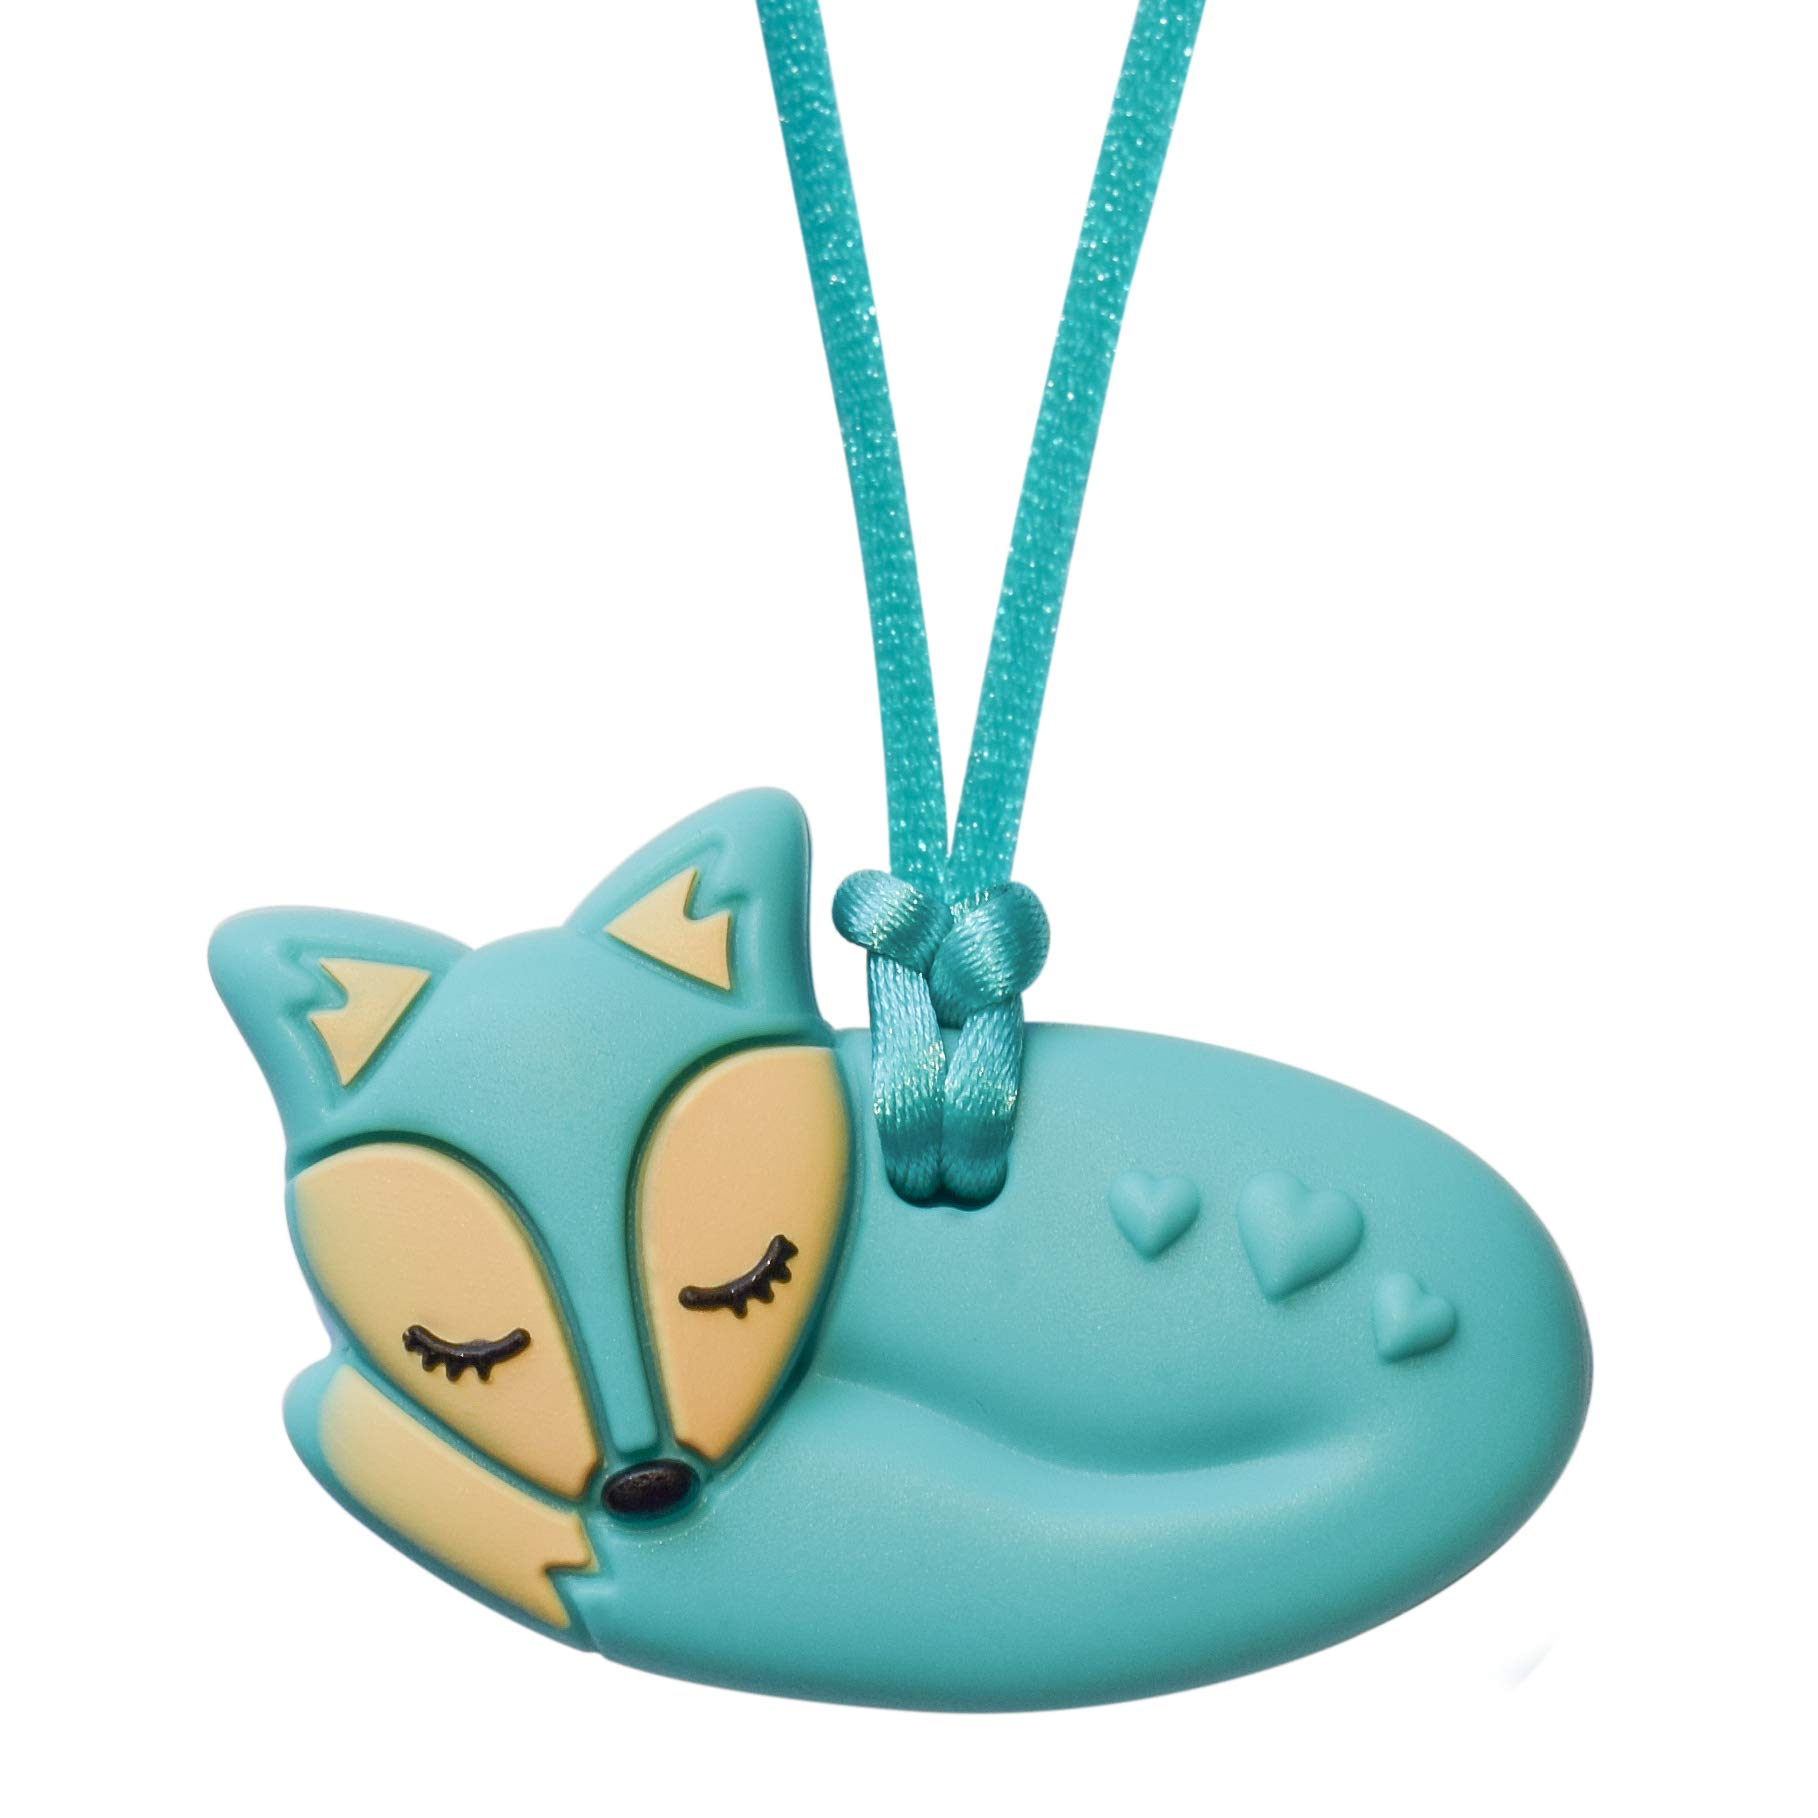 Aqua Fox - Sensory Oral Motor Aide Chewelry Necklace - Chewy Jewelry for Sensory-Focused Kids with Autism or Special Needs - Calms Kids and Reduces Biting/Chewing/Fidgeting